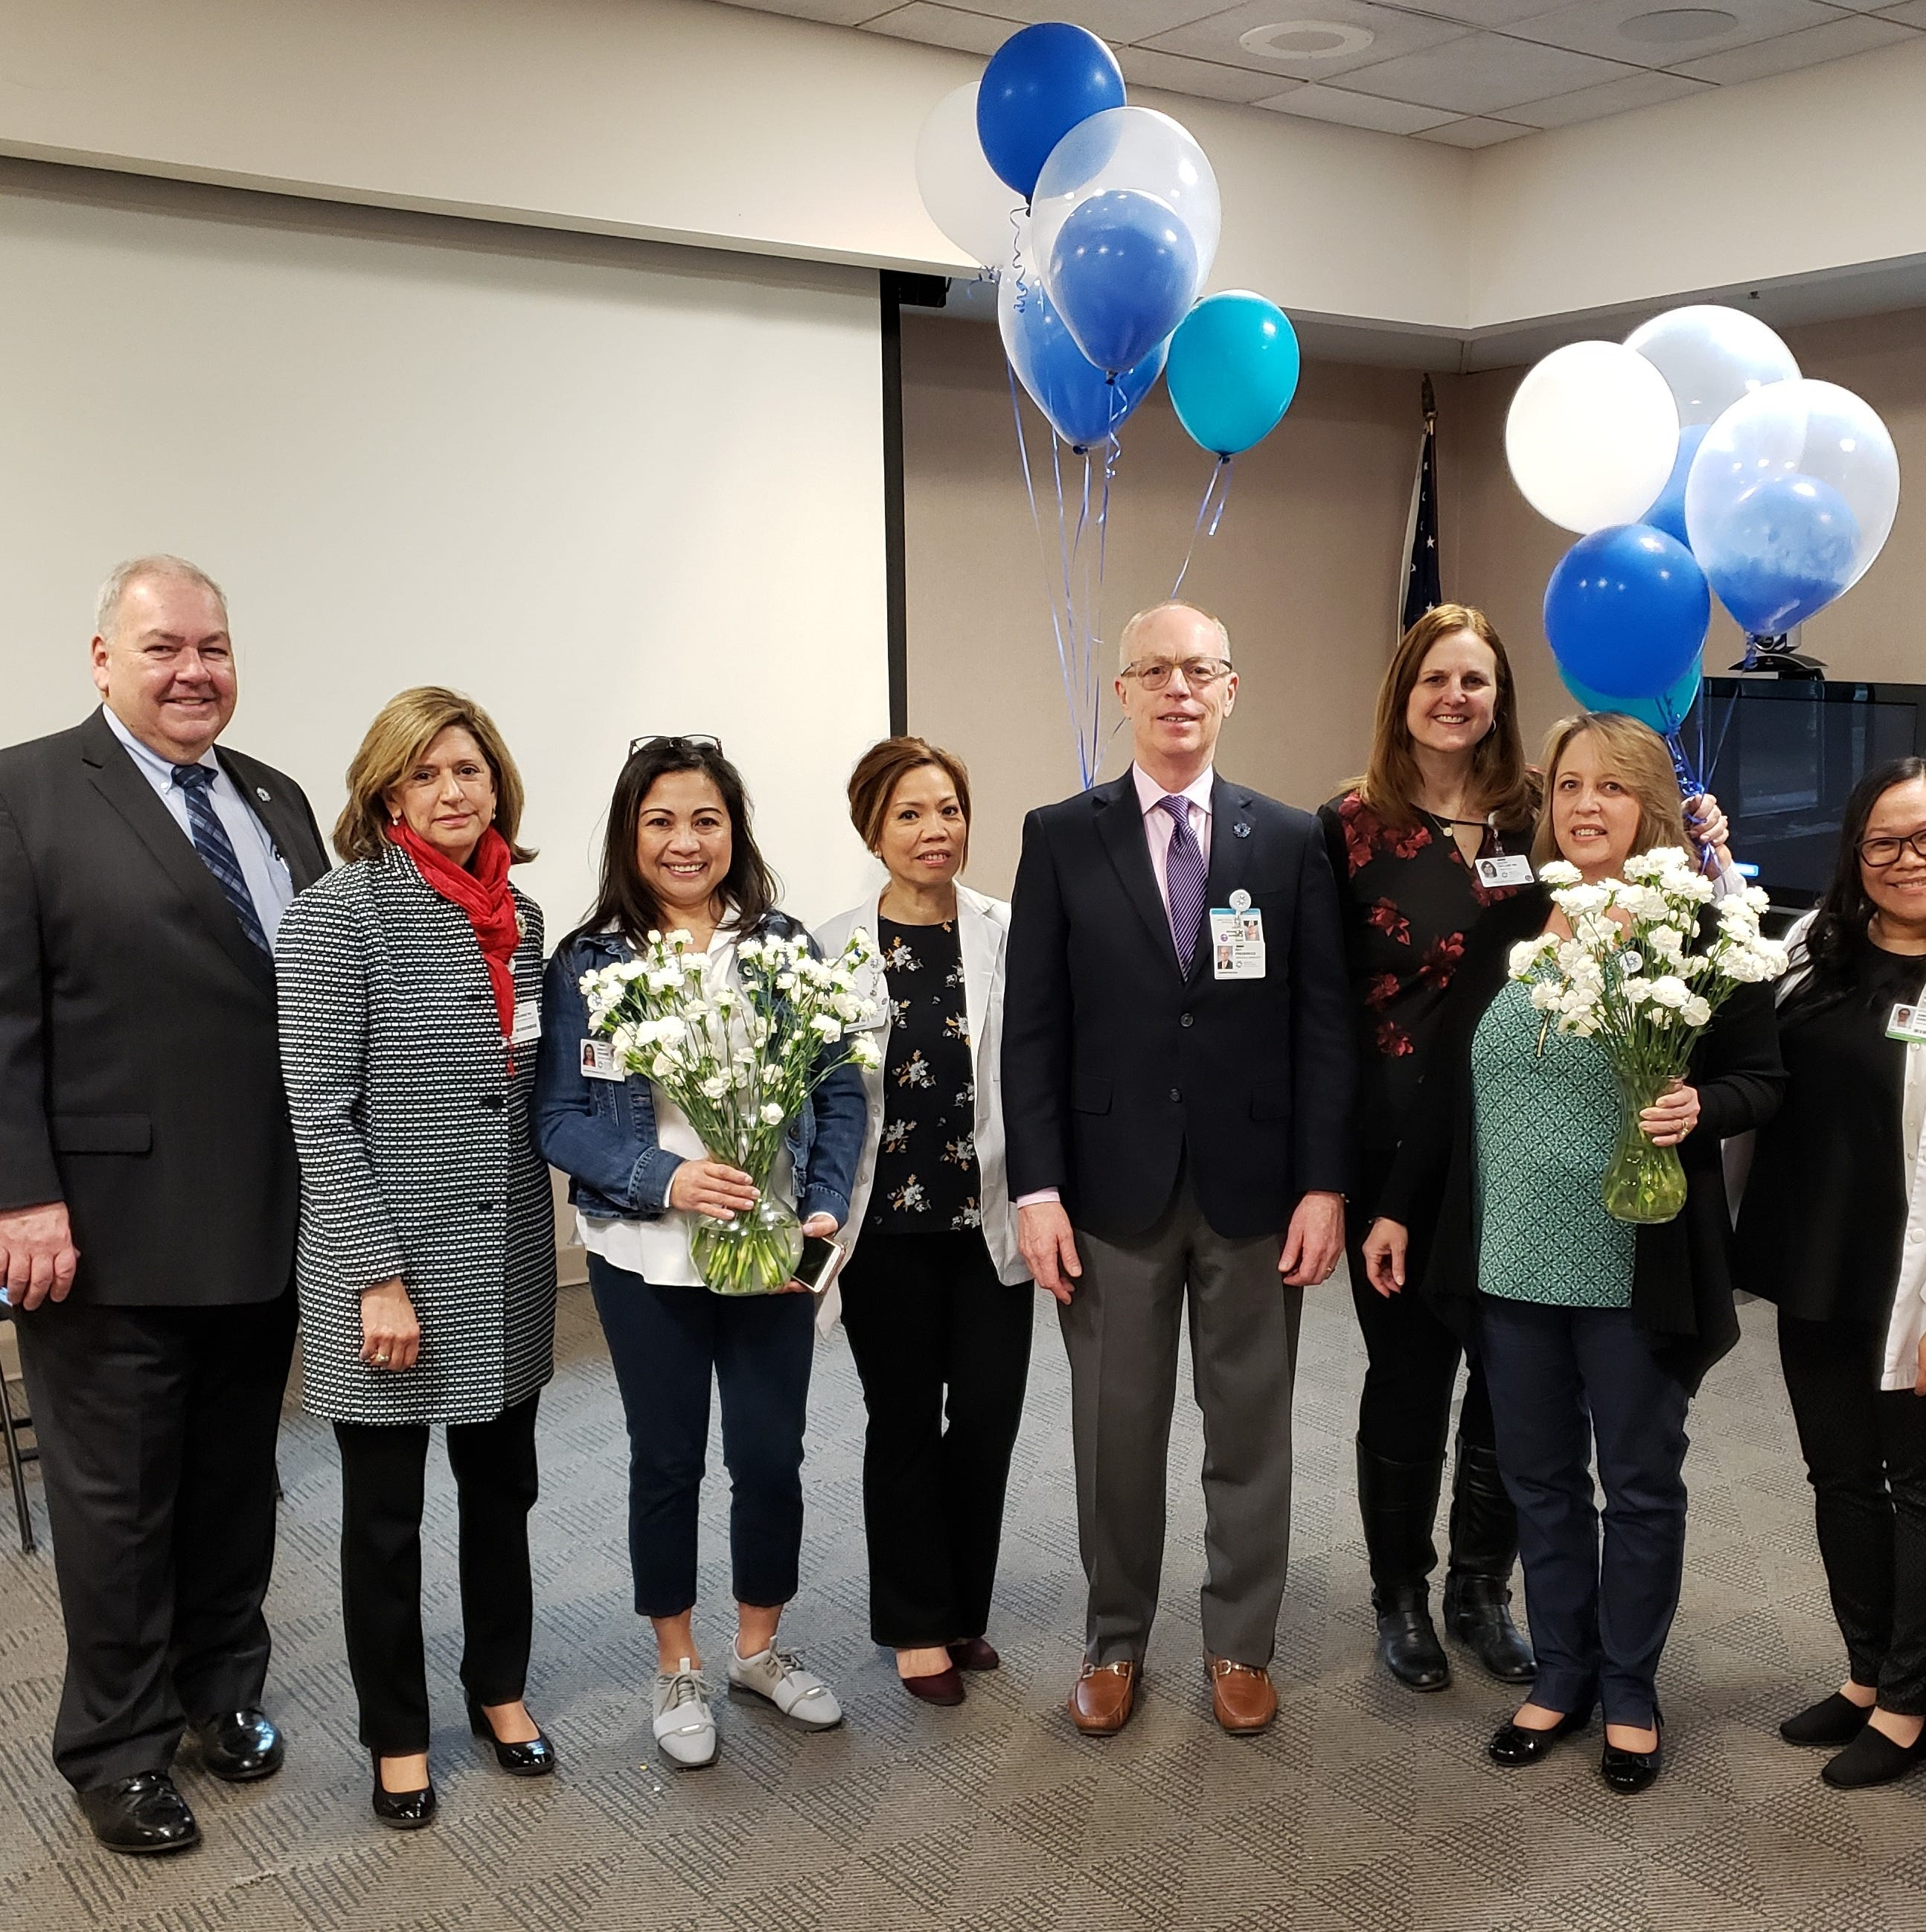 Heartbeats: Raritan Bay achieves Magnet Recognition for Nursing Excellence